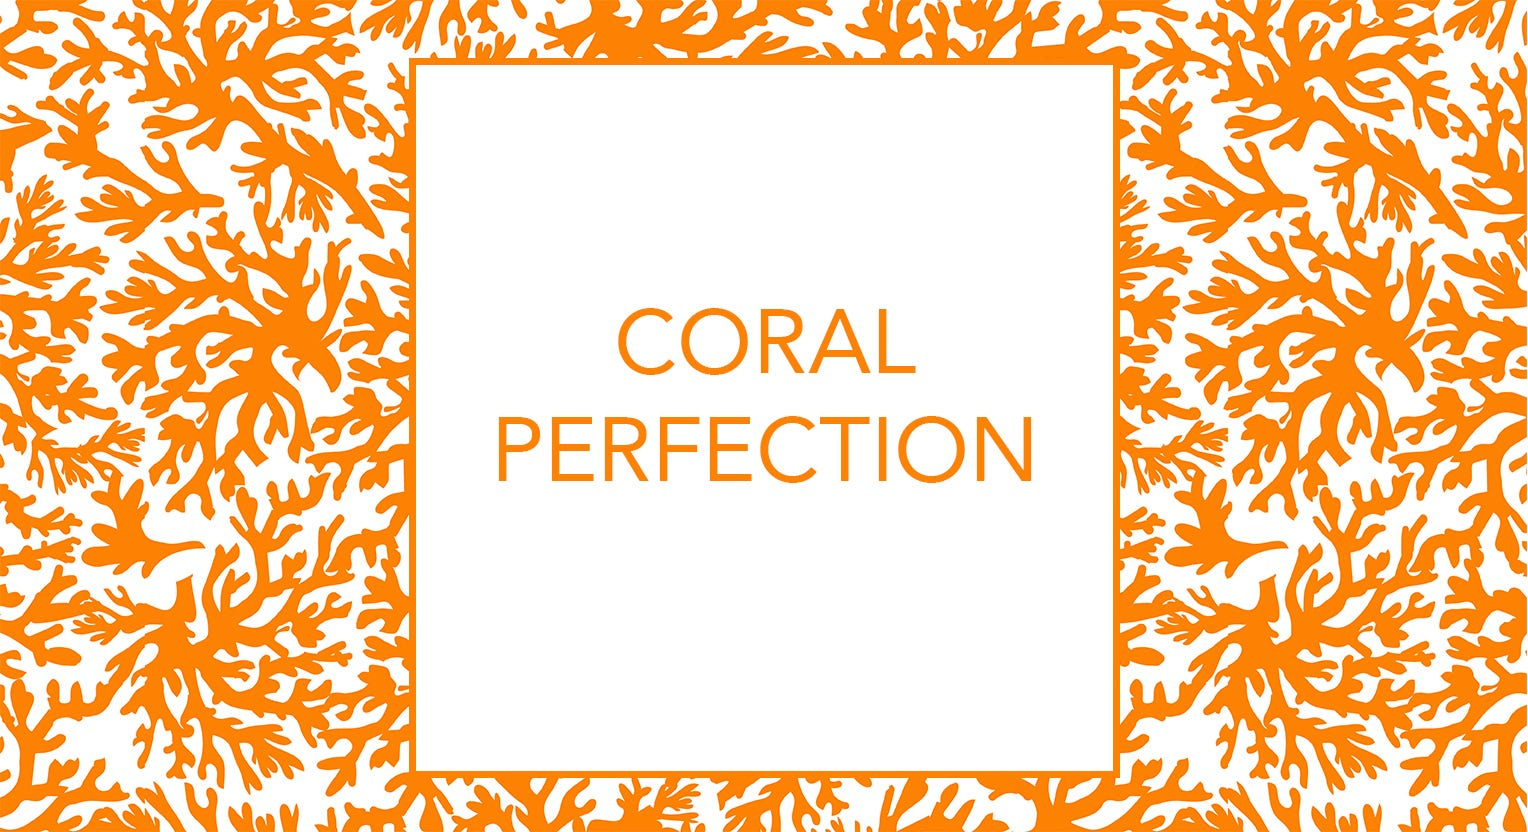 Coral Perfection